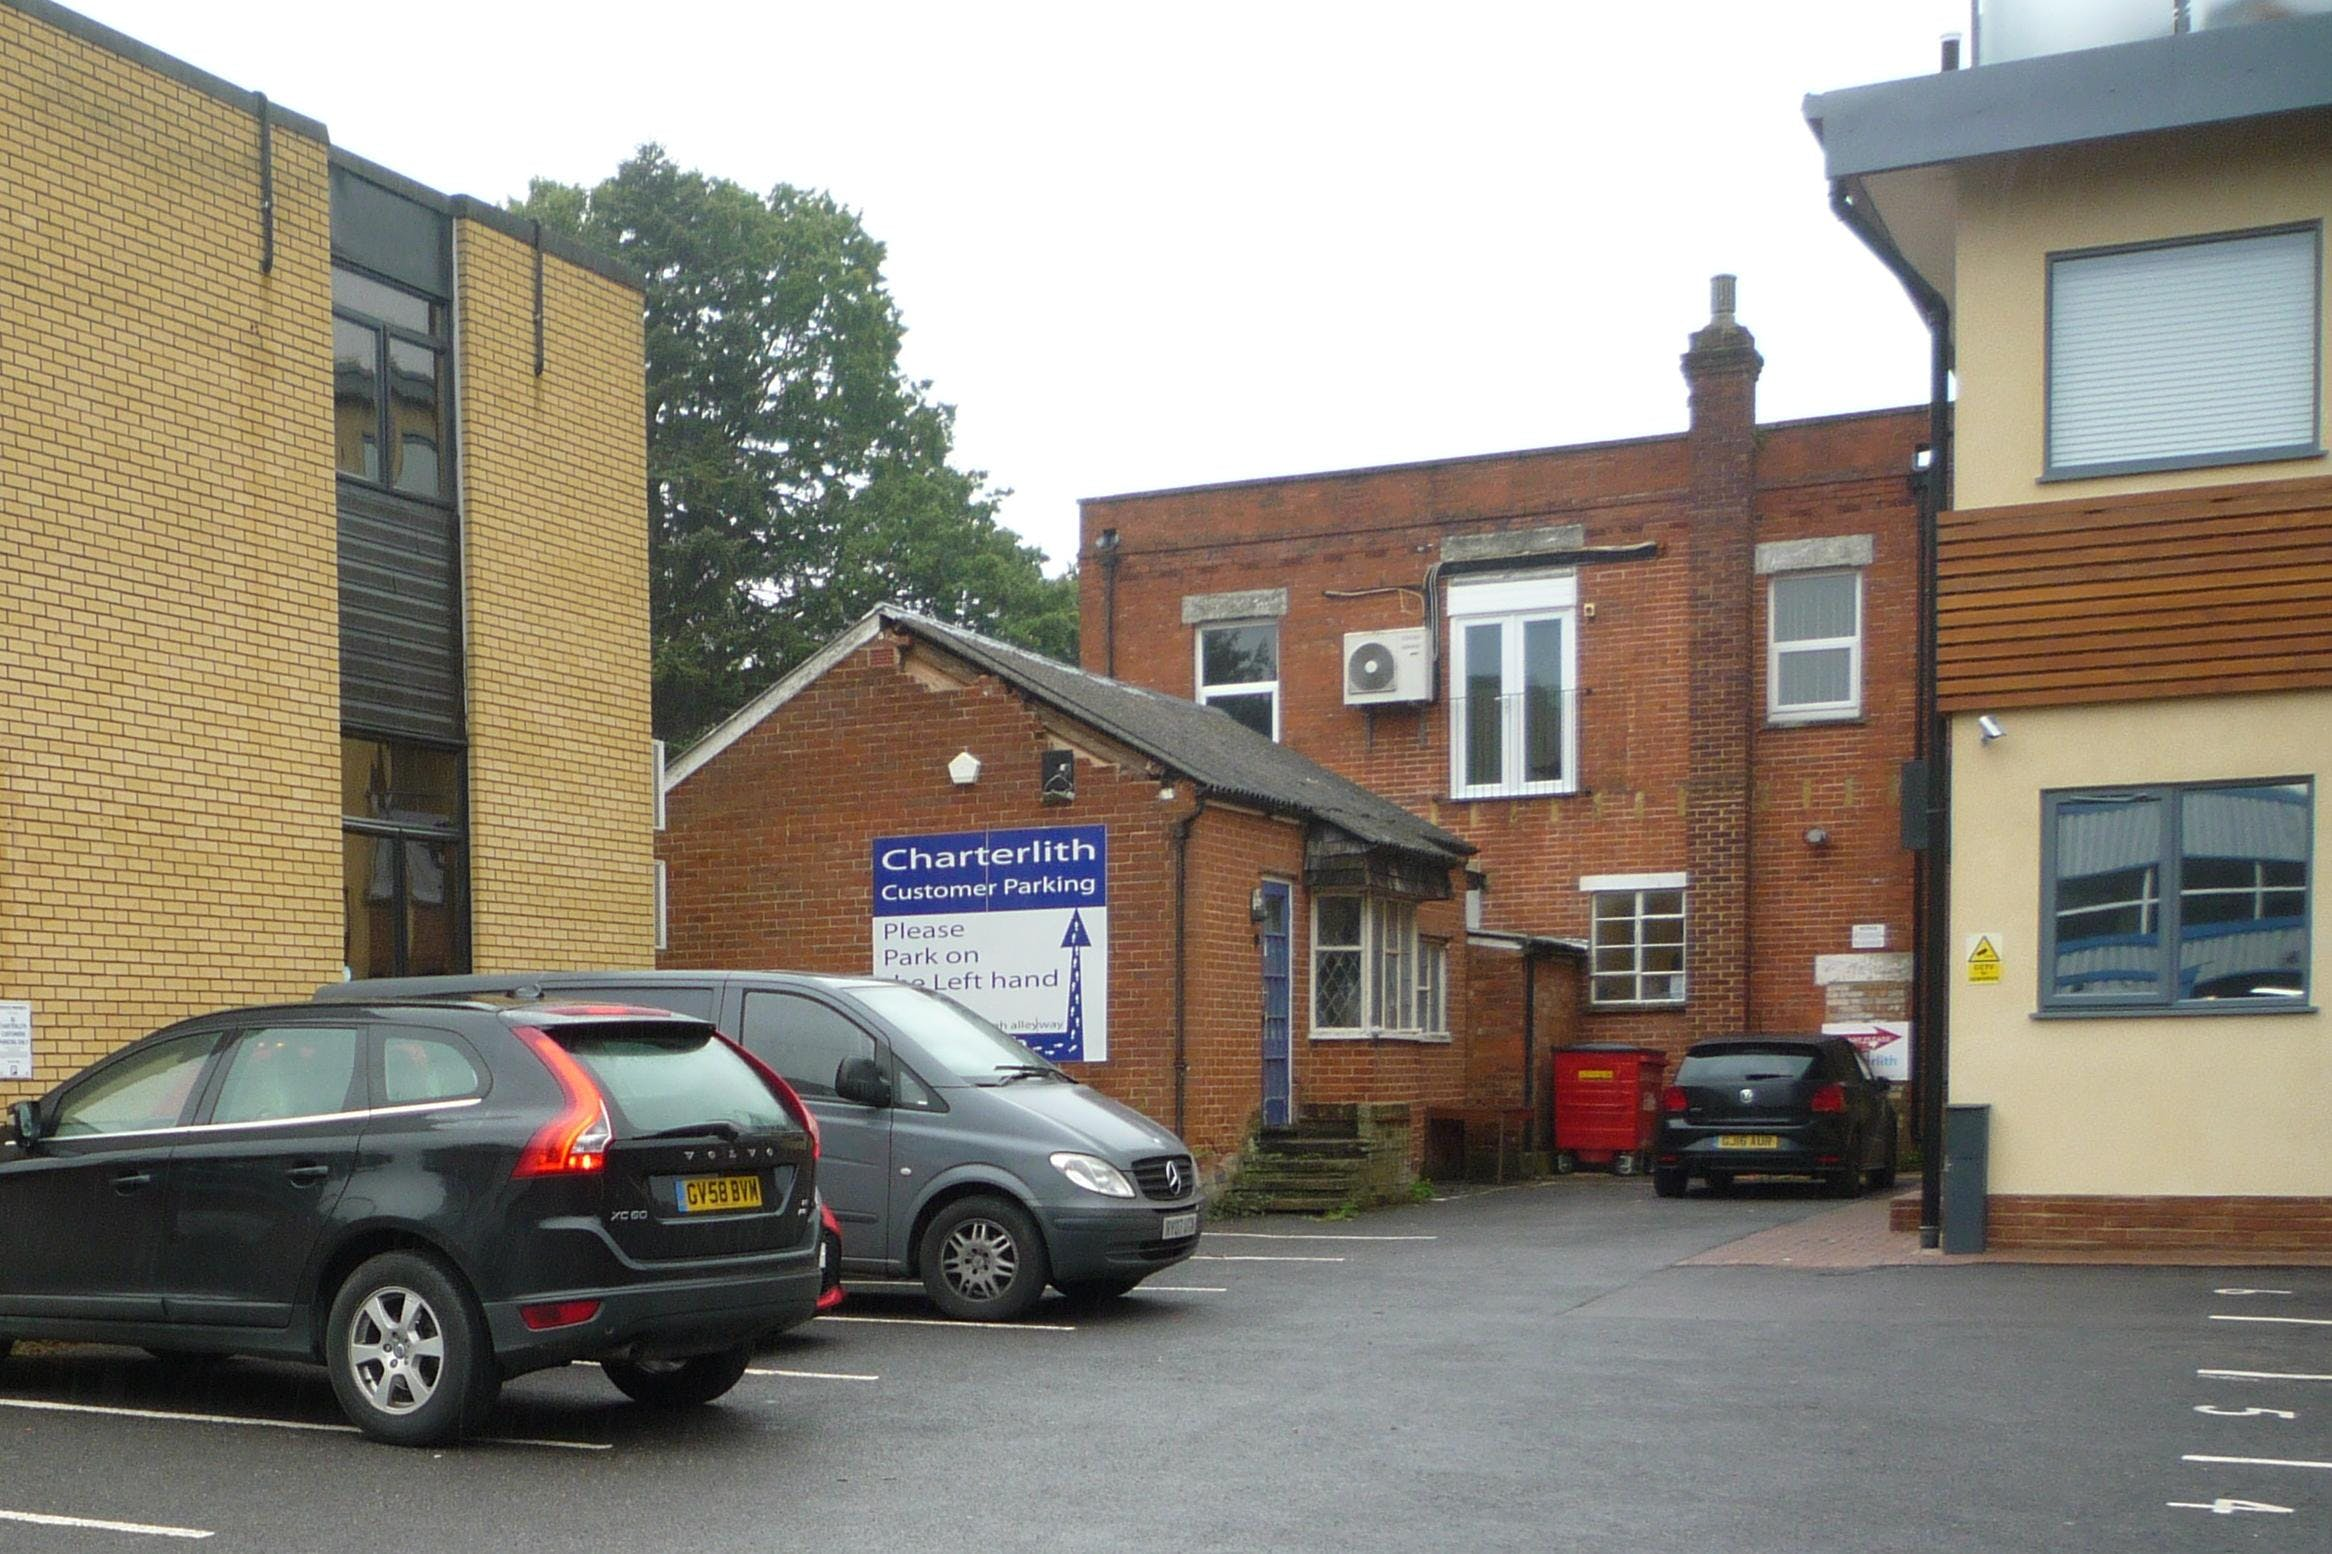 30 Reading Road South, Fleet, Offices To Let - P1040358.JPG